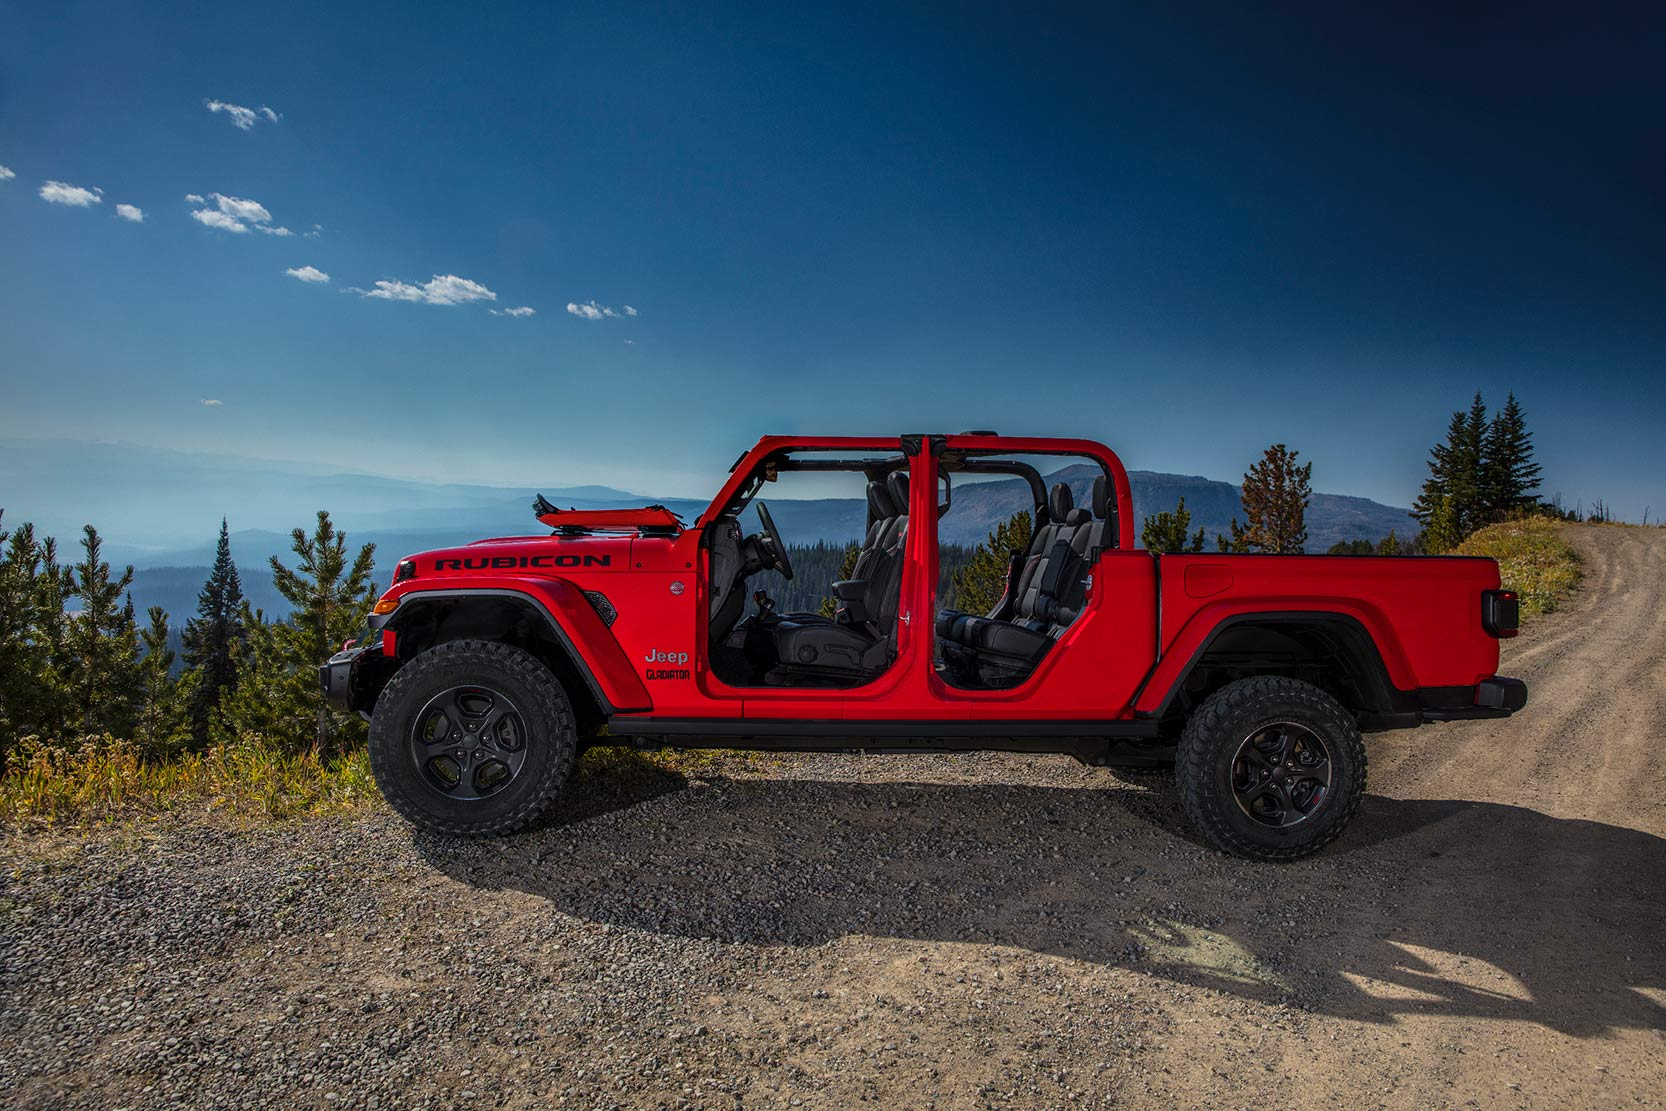 Exterieur_Jeep-Gladiator_14